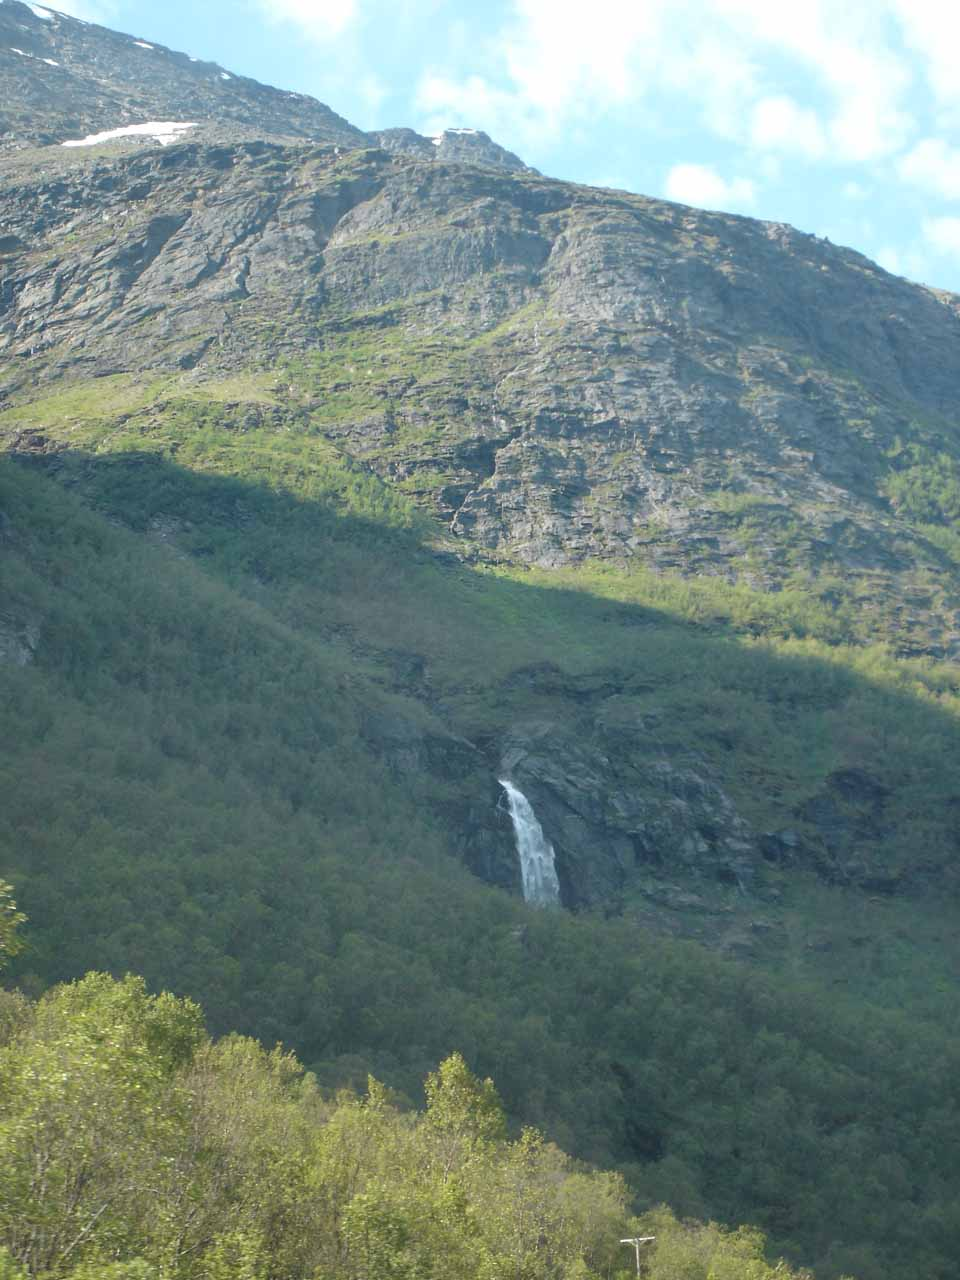 Around the time we were either leaving or had already left Kåfjorden, Julie got this partial view of some other waterfall whose stream we can't pinpoint